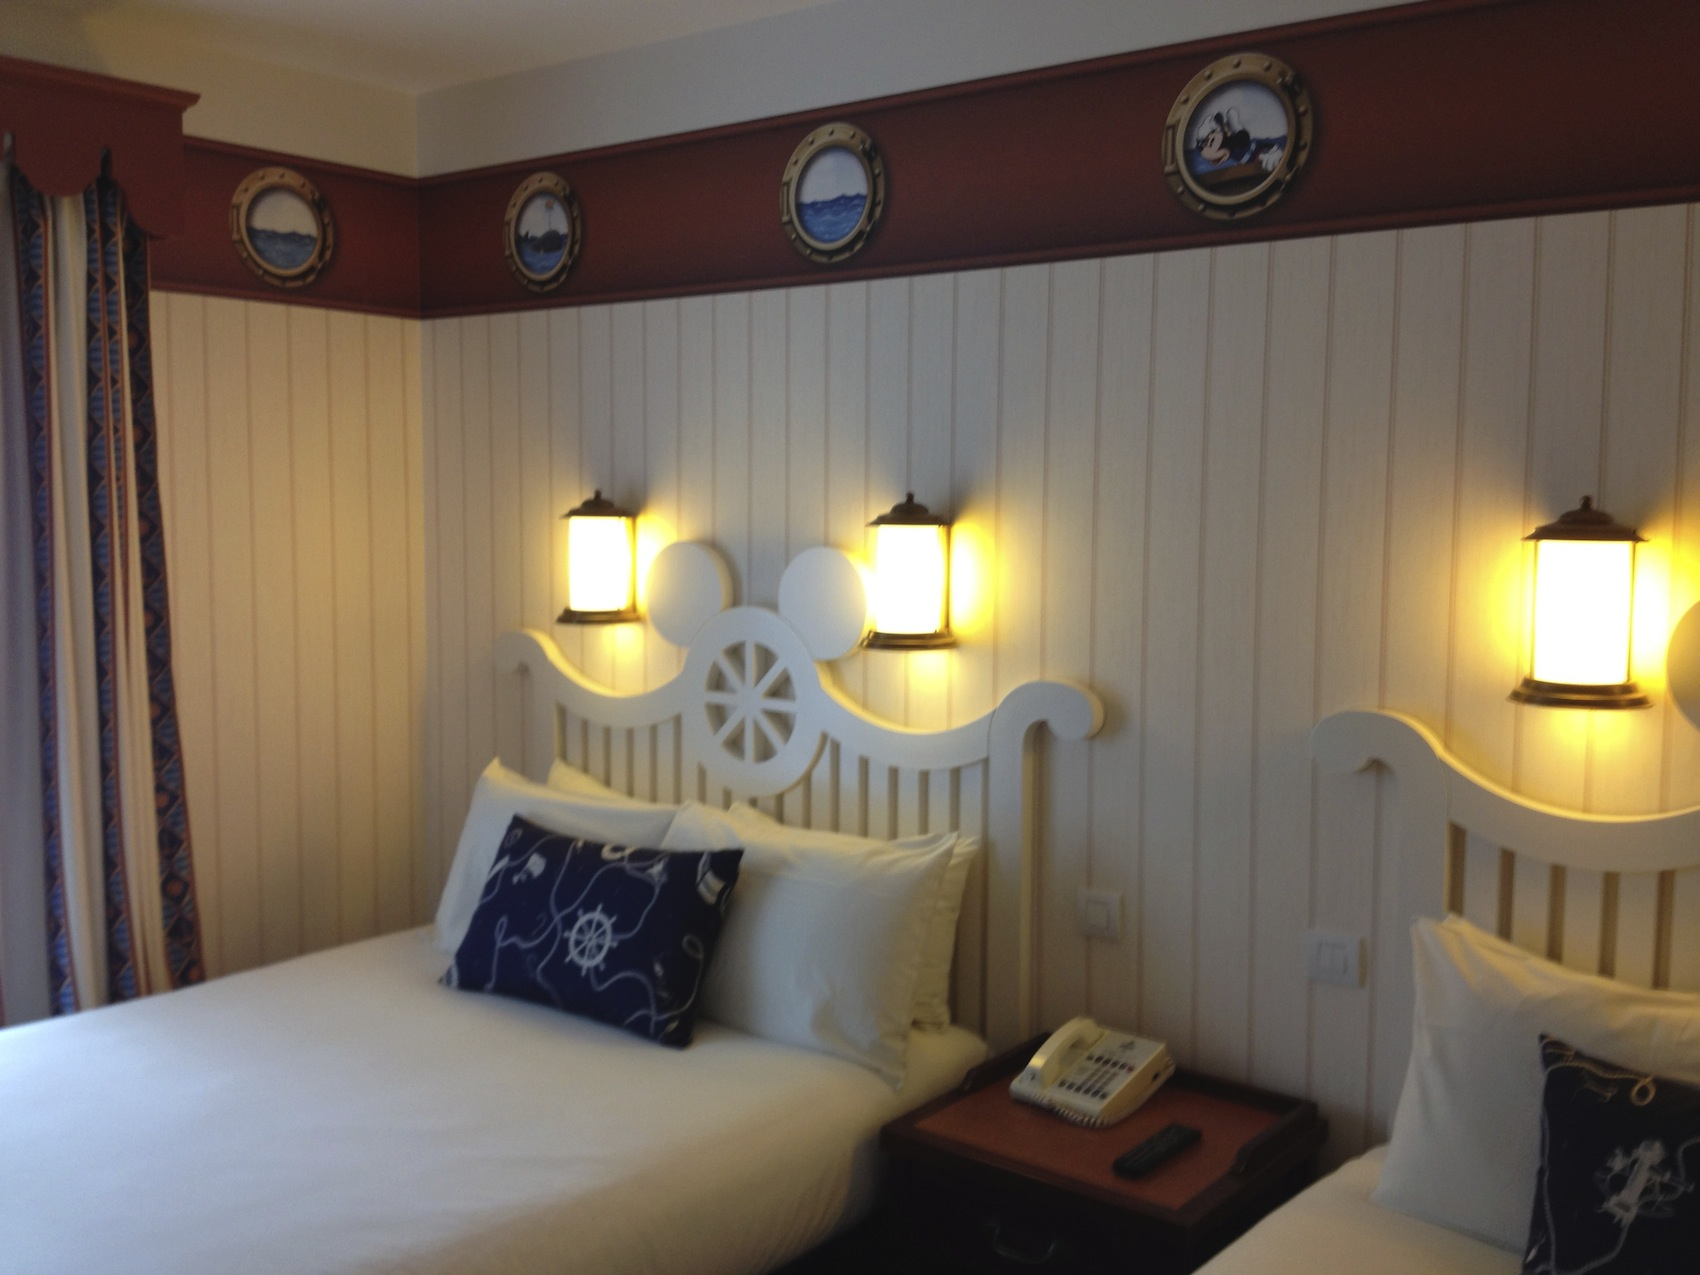 Disneyland Hotel Chambre Chambre New Port Bay Club Hotel Disneyland Paris Room Le Parcorama